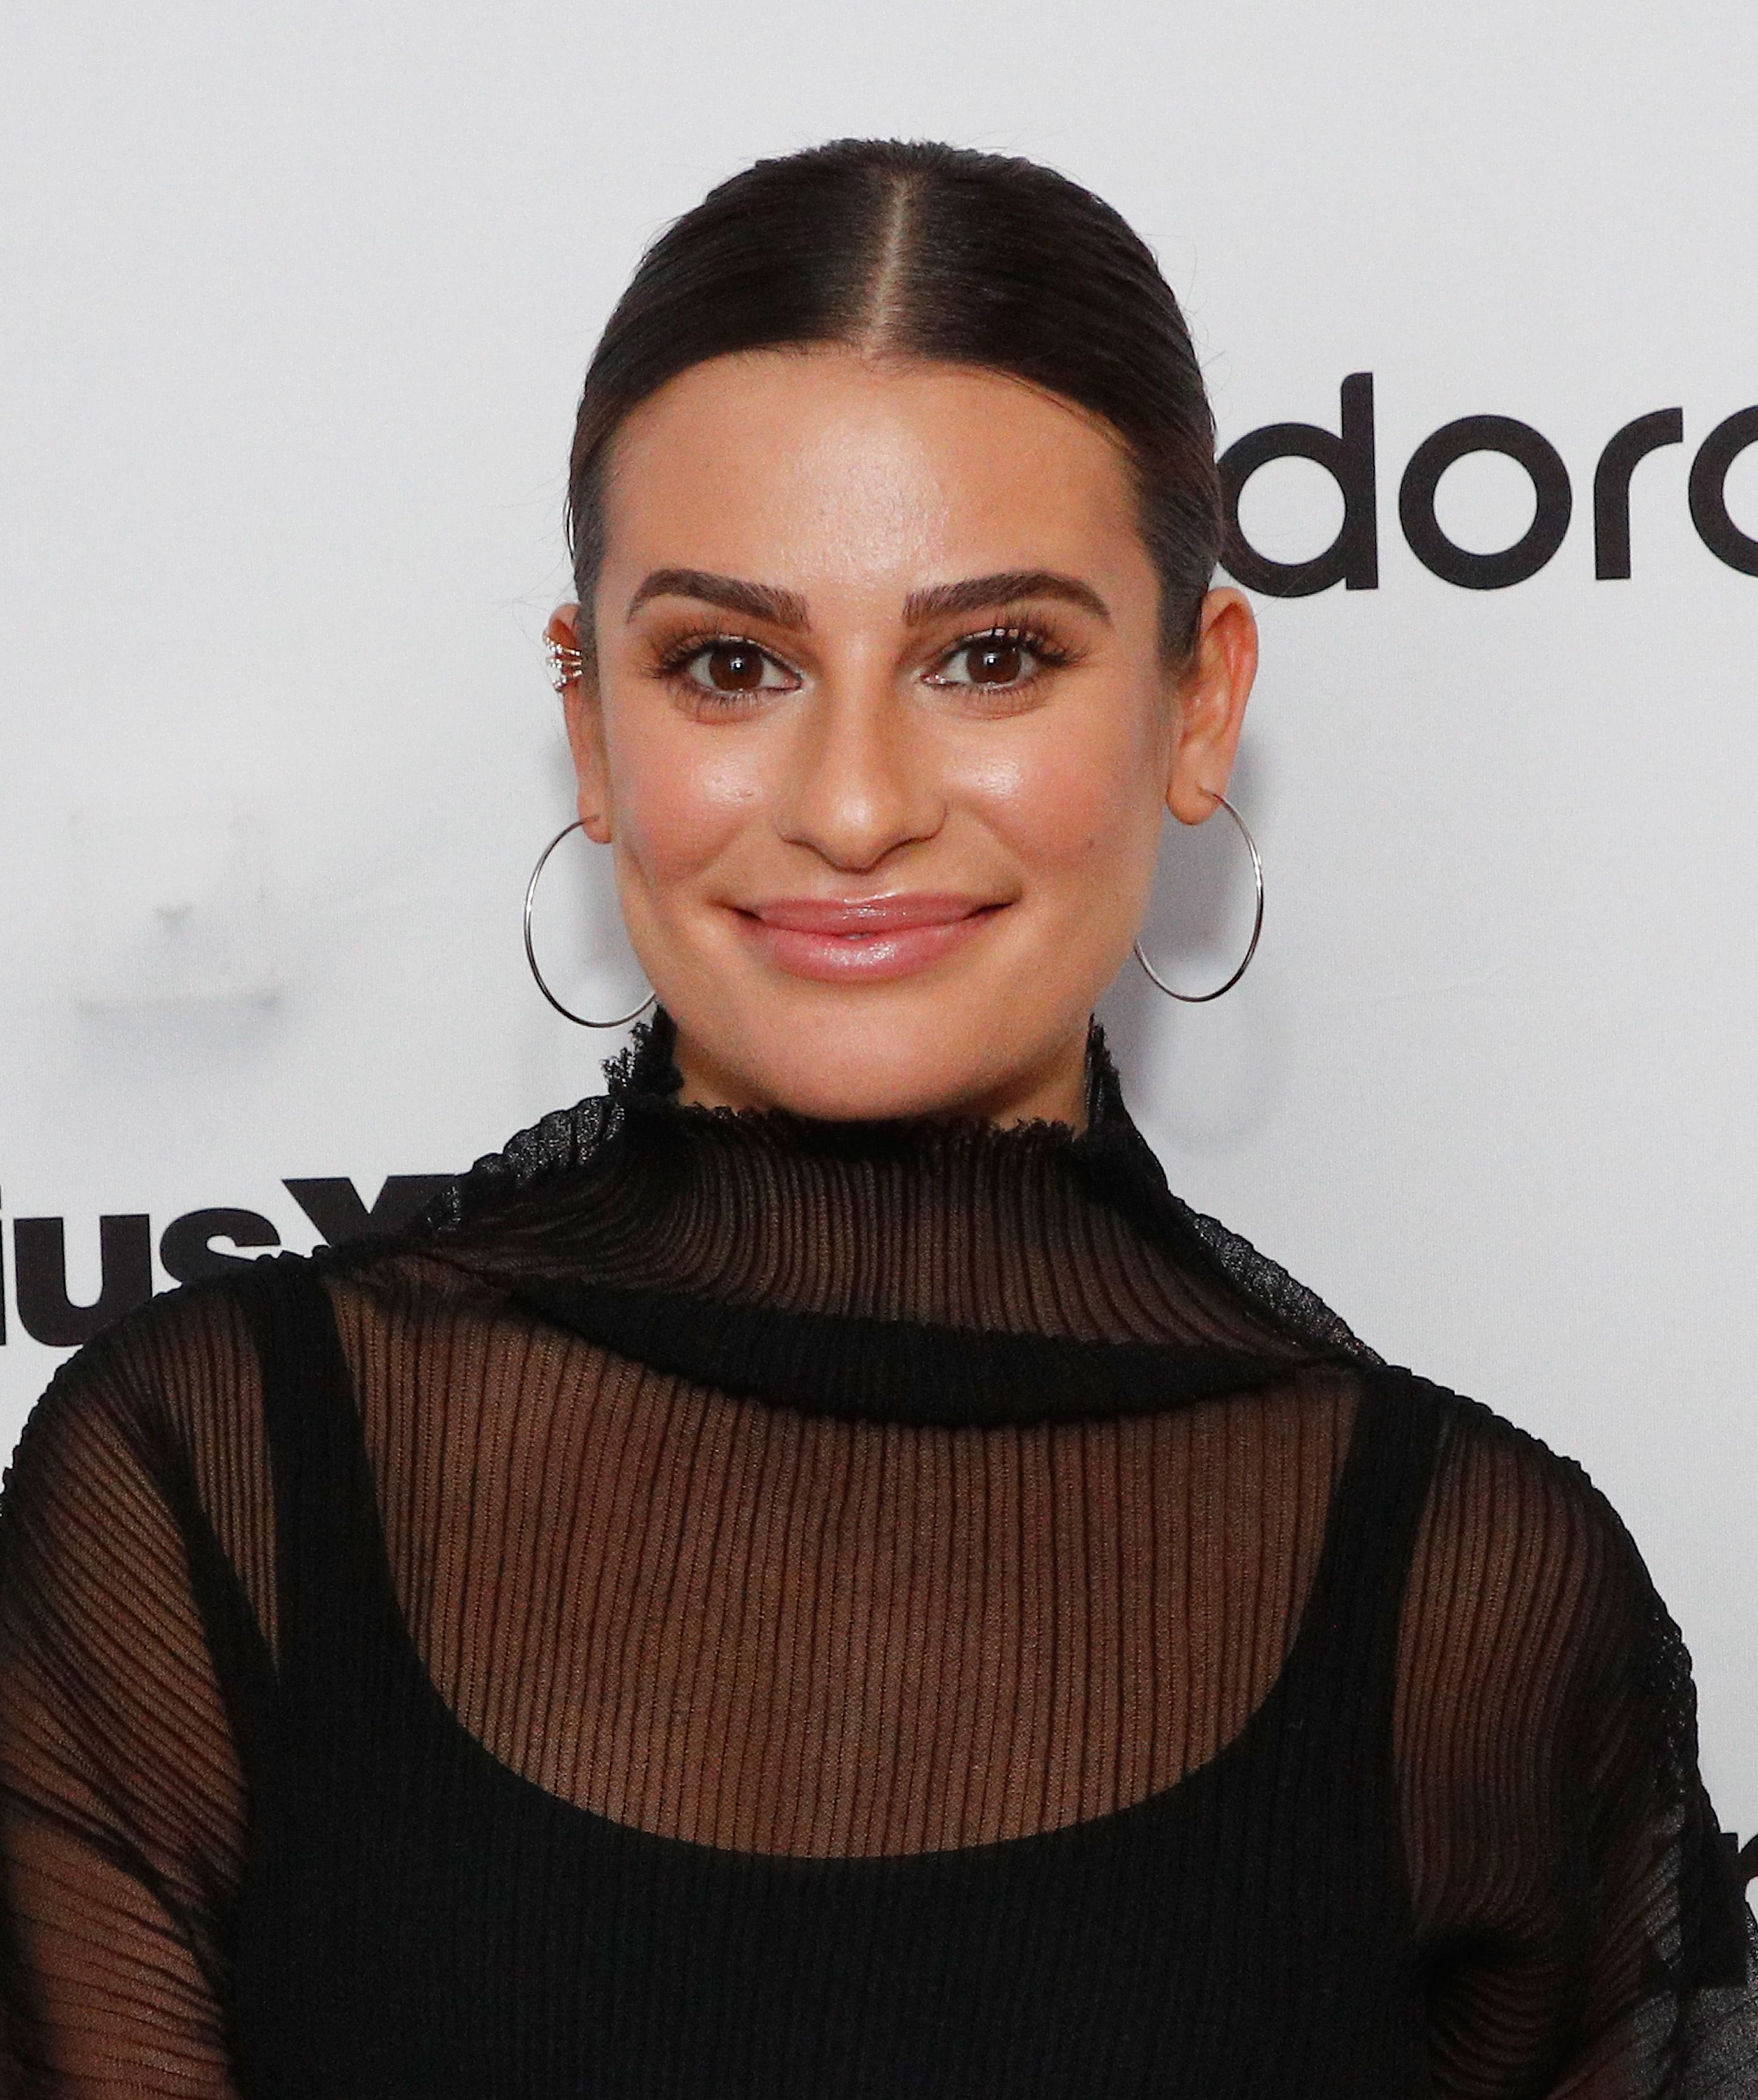 Lea Michele responds to bullying accusations from Glee co-star